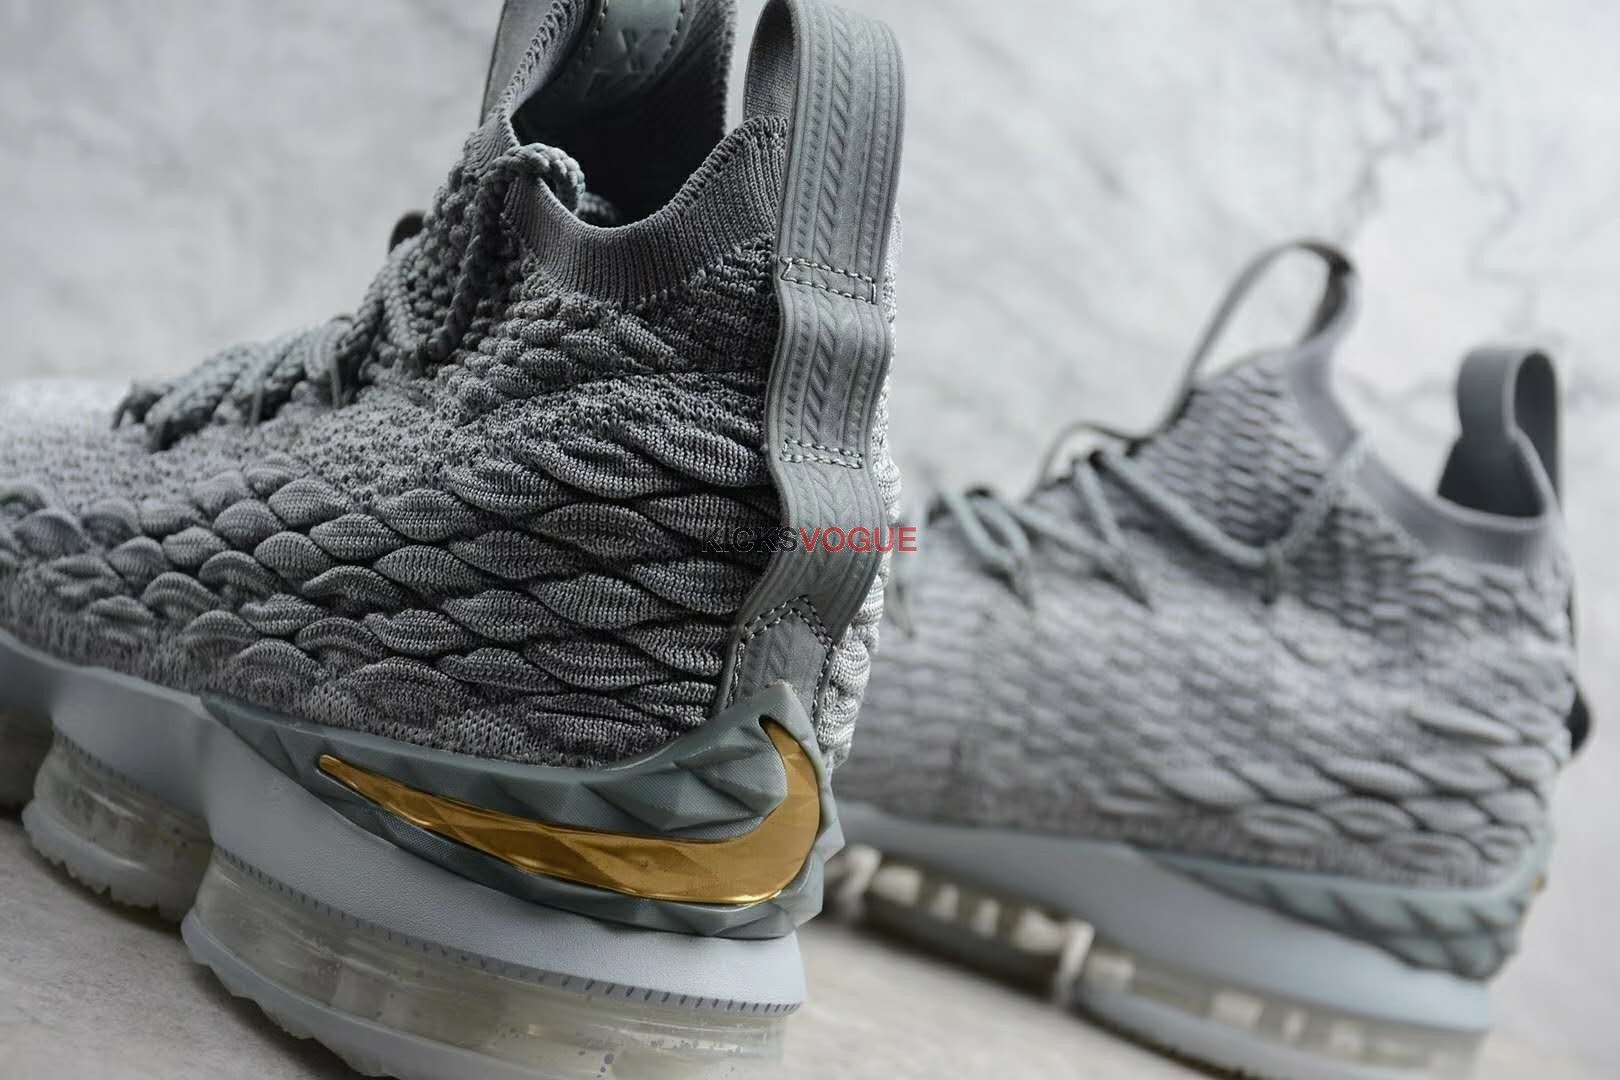 504b57b5f7f8 Nike LeBron 15 City Edition Grey Gold 897648-005